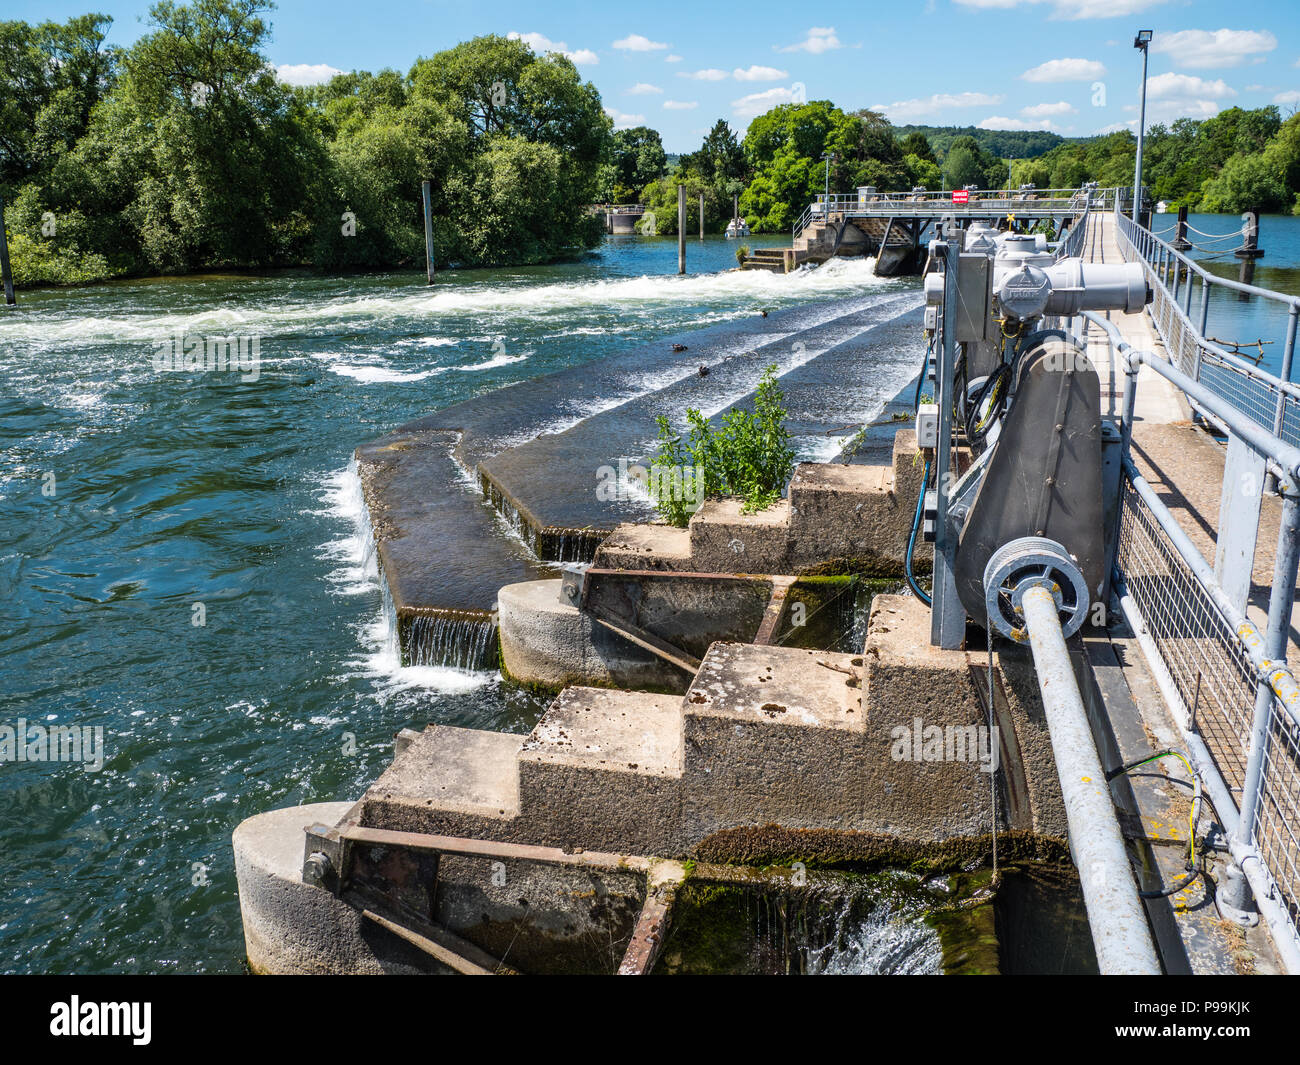 Flood Control, Hambleden Lock and Weir, River Thames, Berkshire, England, UK, GB. Stock Photo